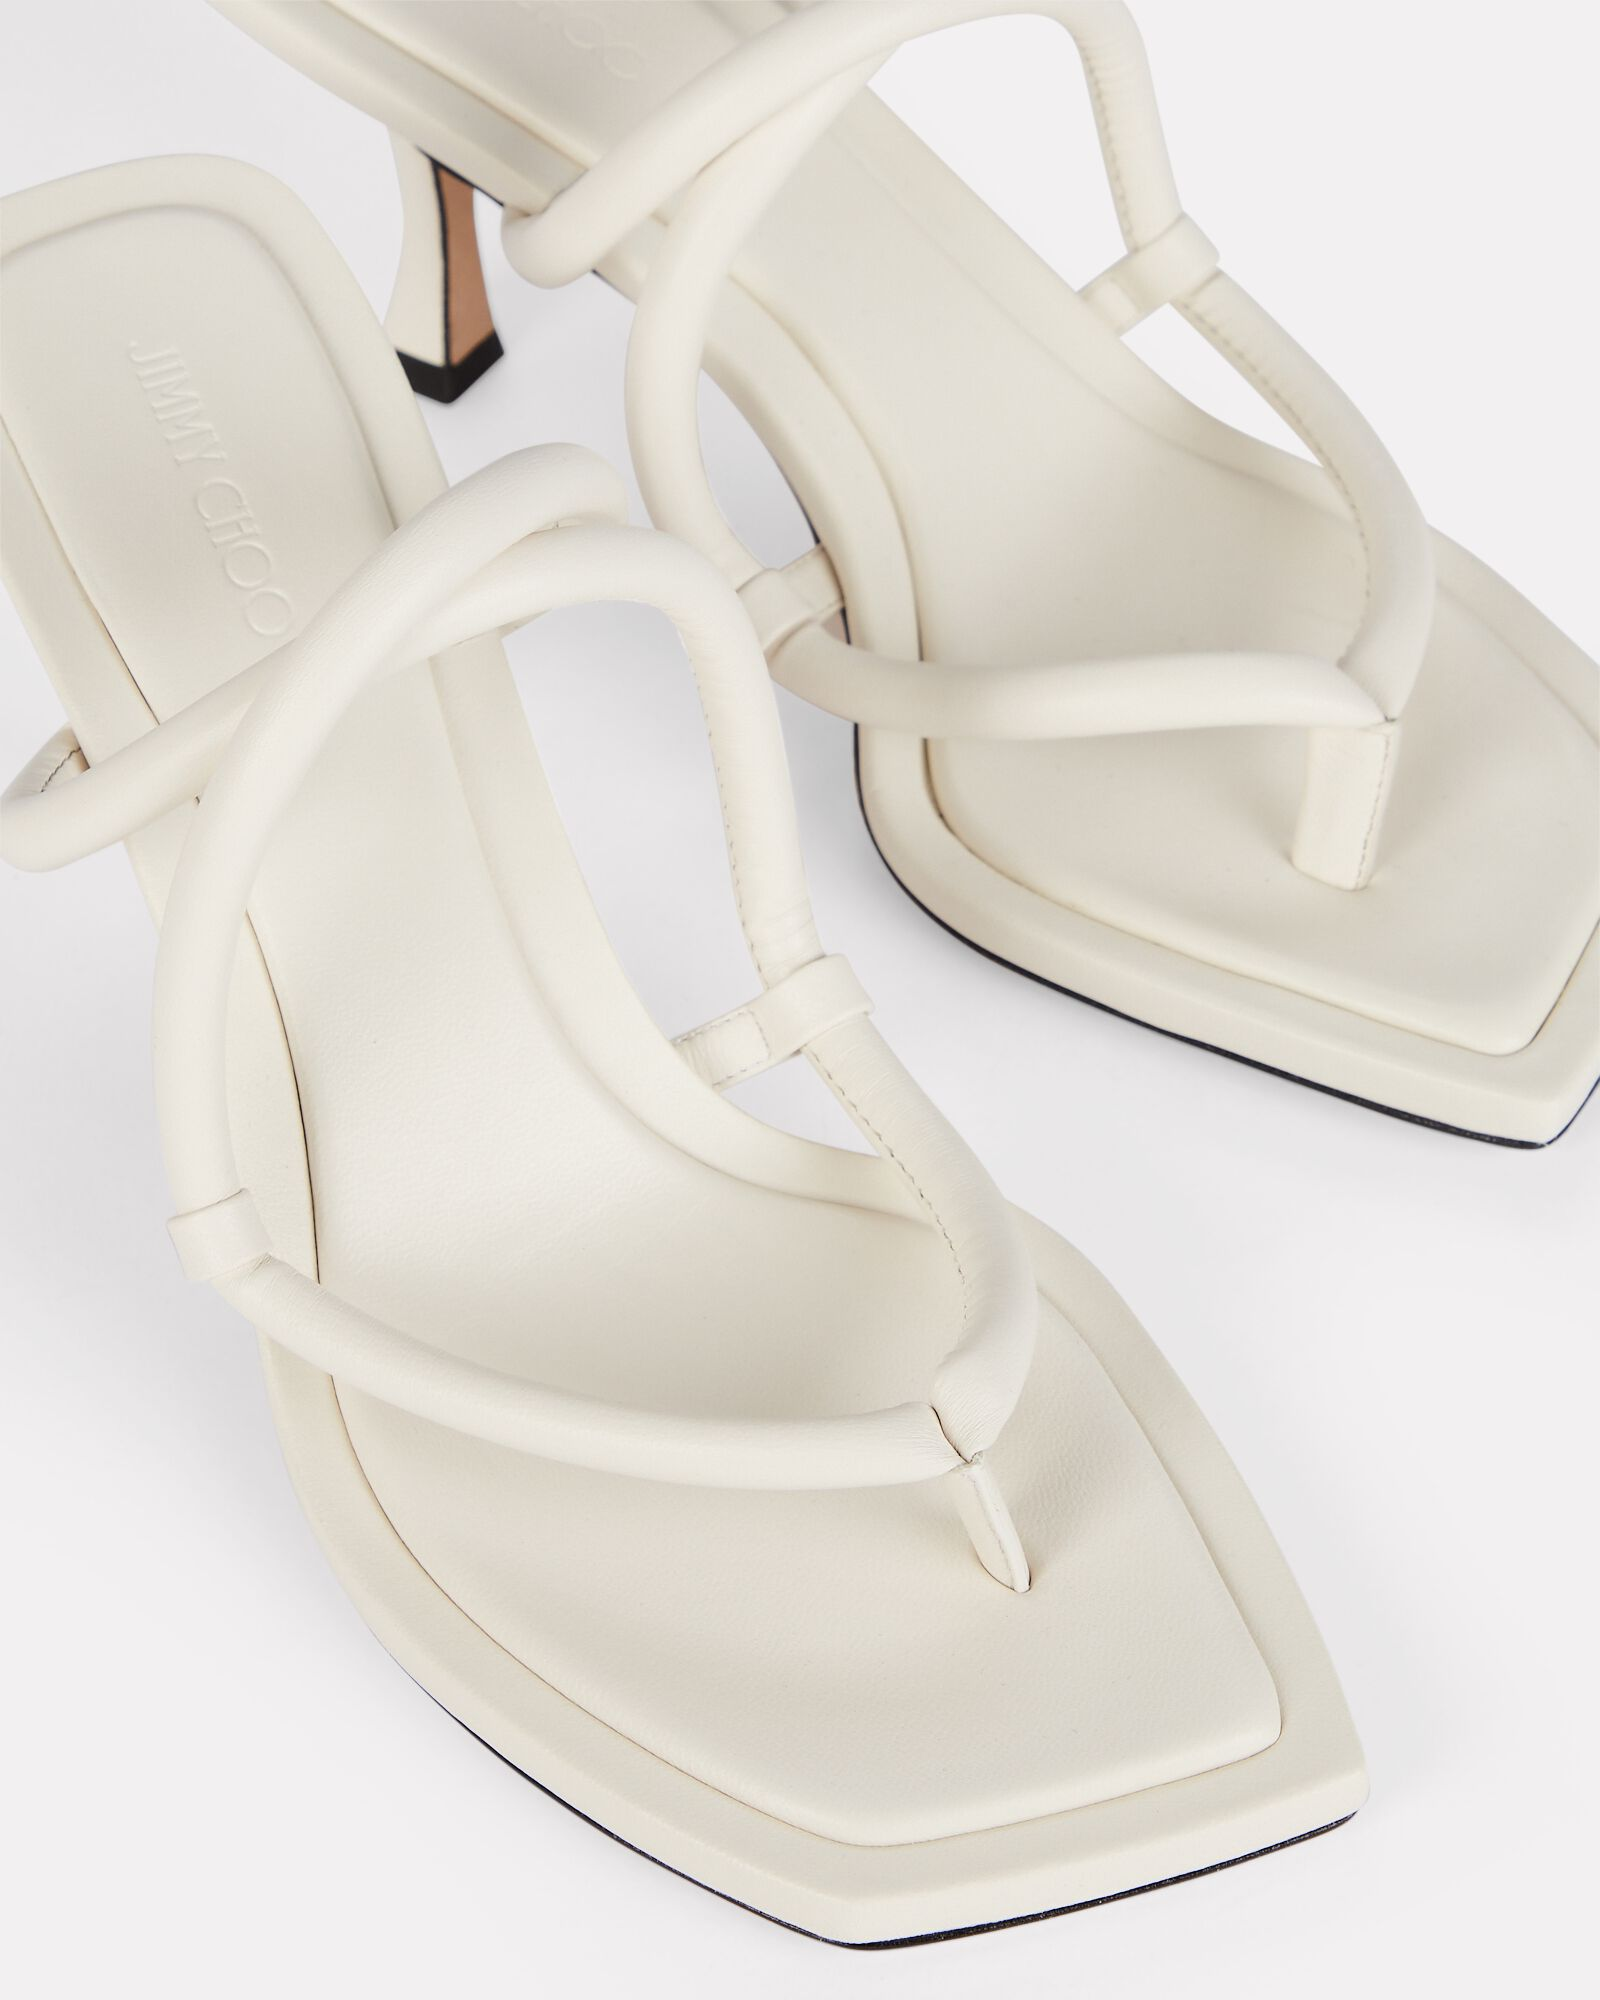 Cape 70 Leather Thong Sandals, IVORY, hi-res